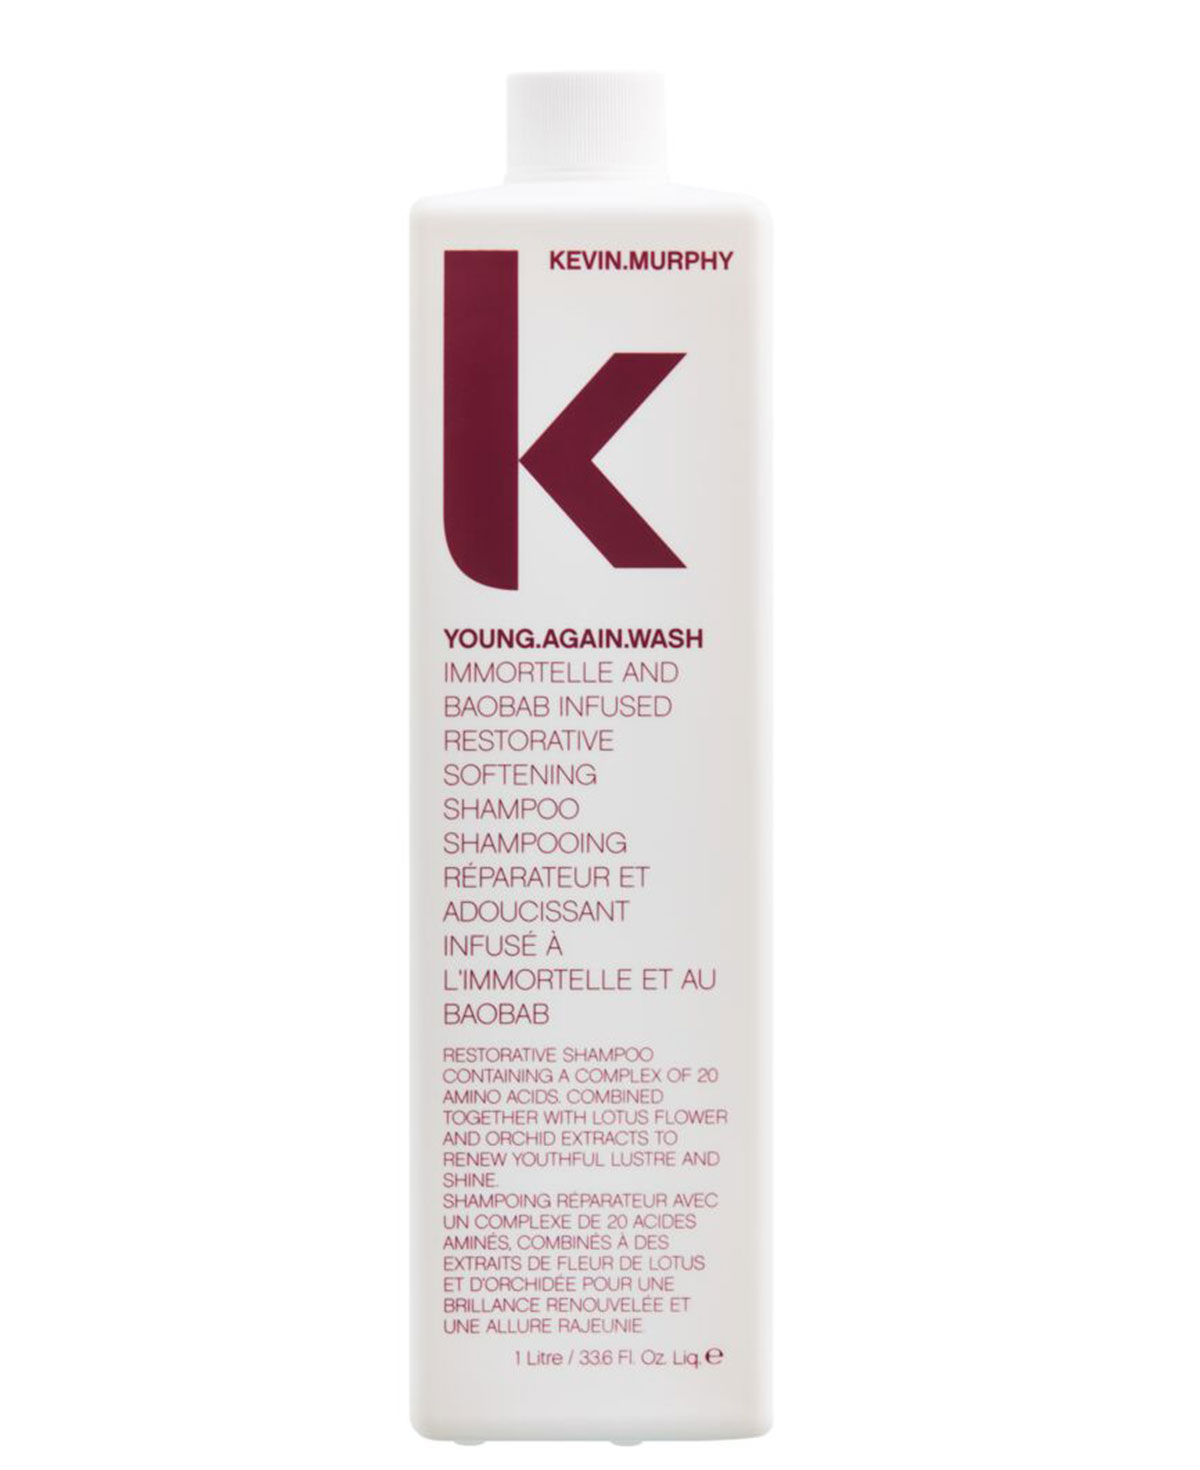 Kevin.Murphy YOUNG.AGAIN.WASH 1000ml